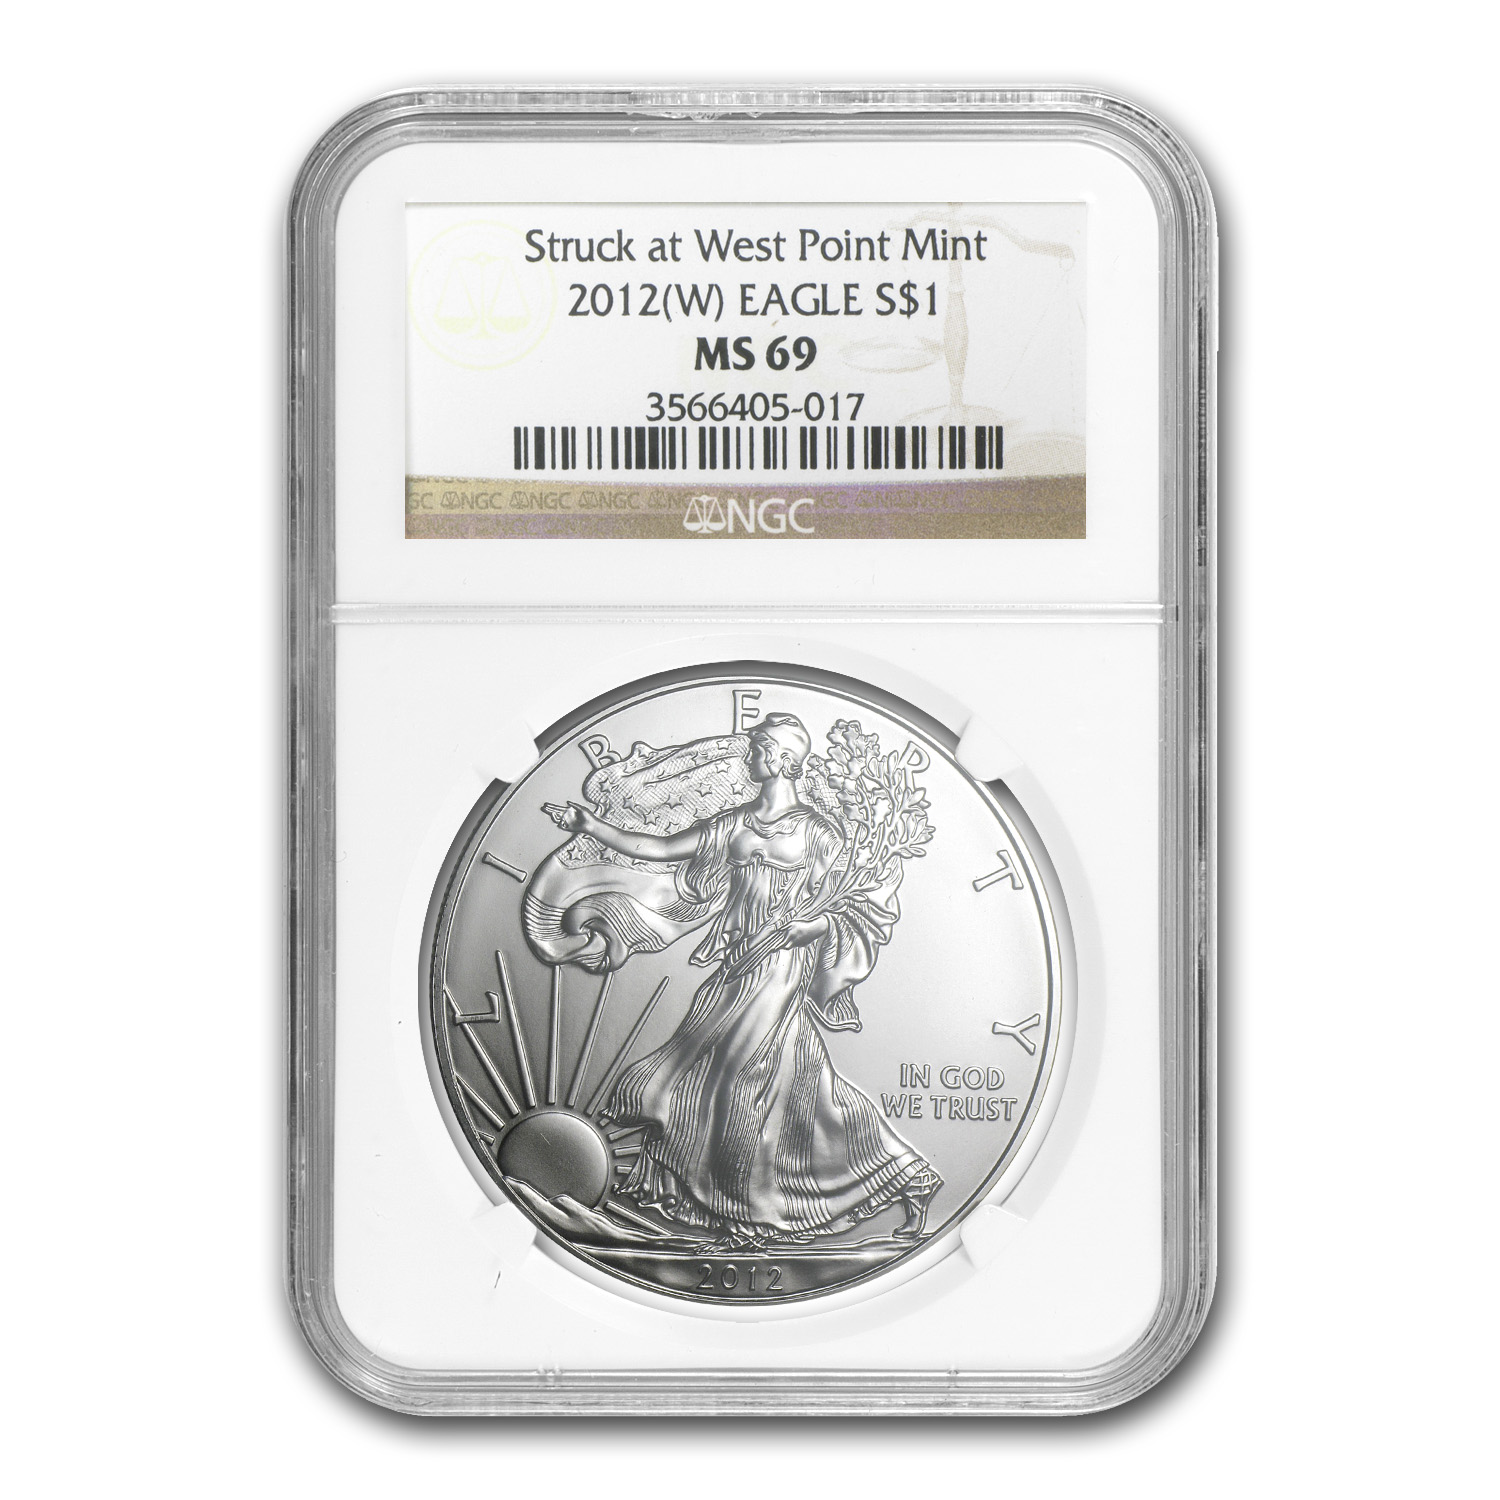 2012 (W) Silver American Eagle MS-69 NGC